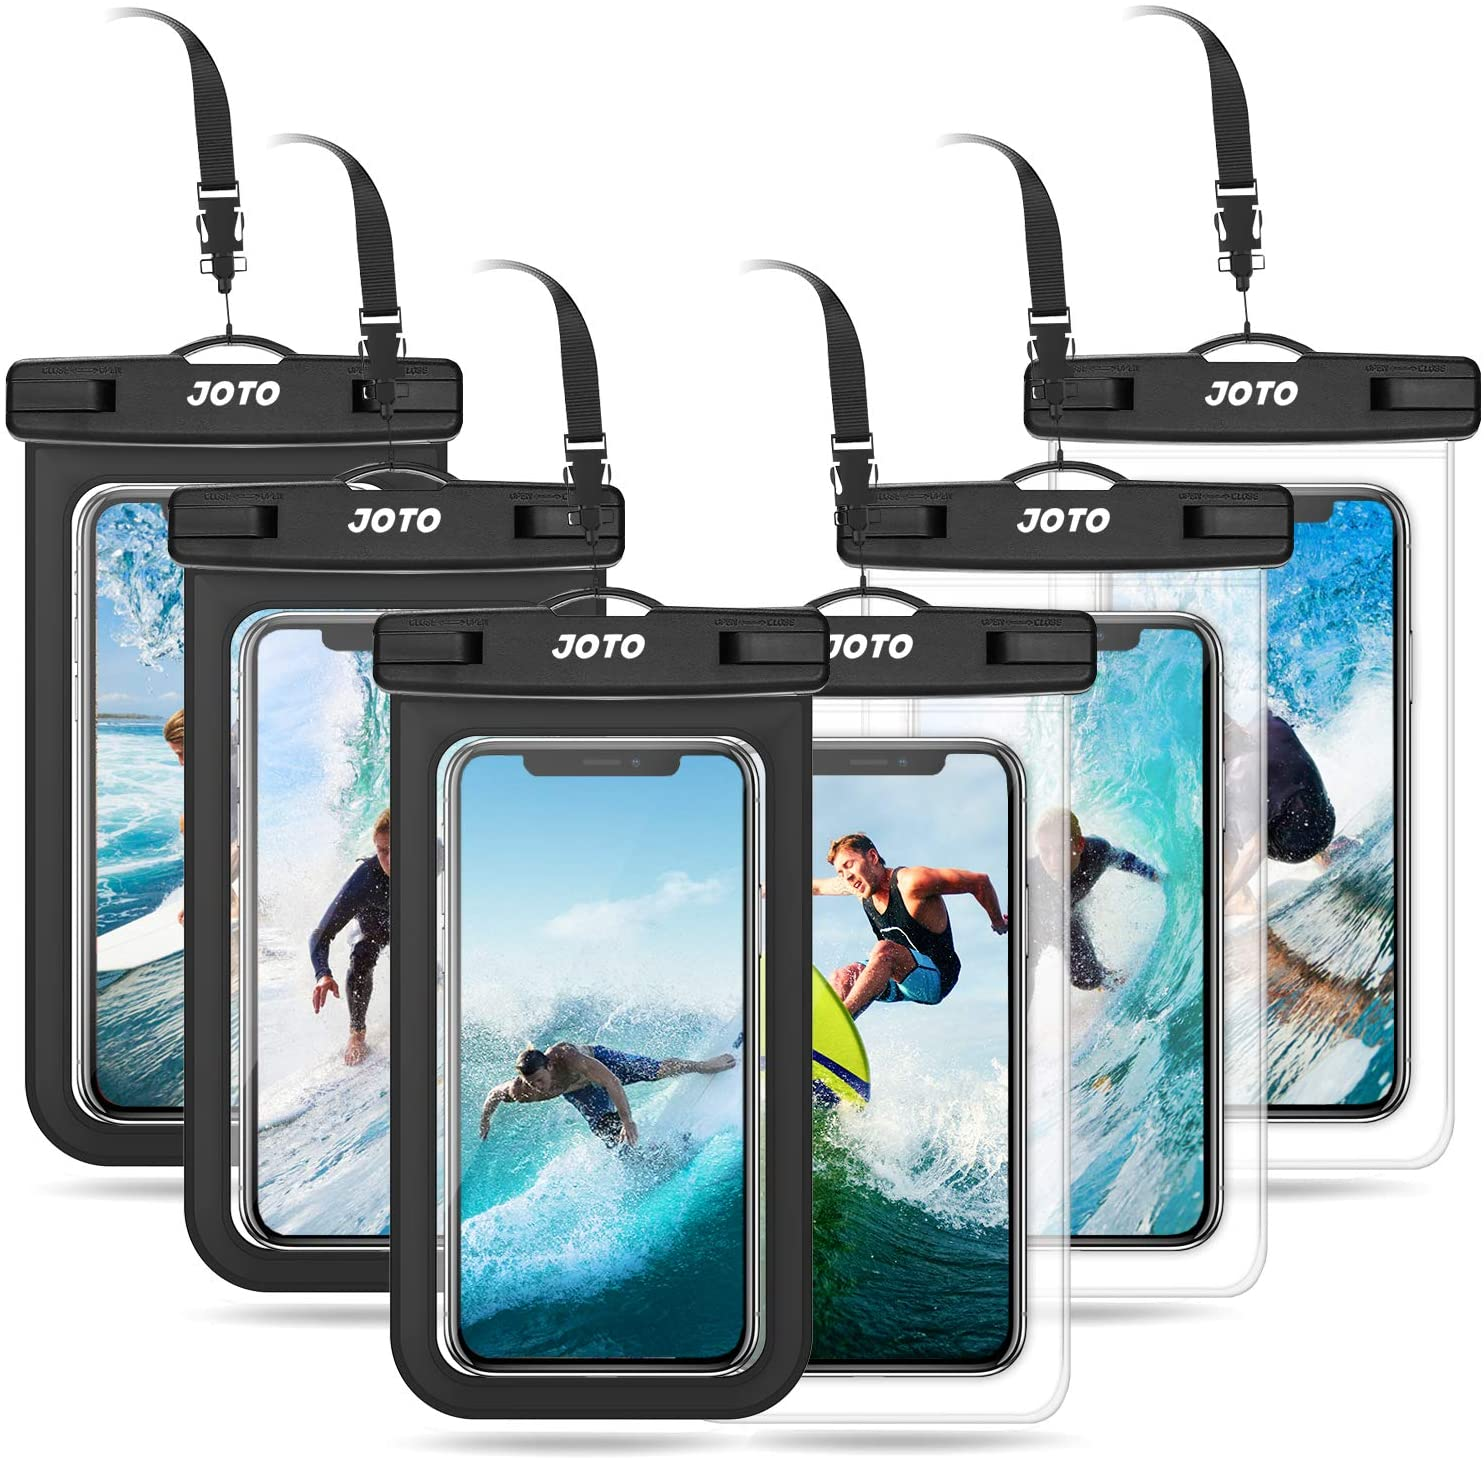 JOTO Universal Waterproof Pouch Cellphone Dry Bag Case for iPhone 12 Pro Max 11 Pro Max Xs Max XR XS X 8 7 6S Plus, Galaxy S10 S9/S9 +/S8/S8 +/Note 10+ 10 9, Pixel 4 XL up to 7